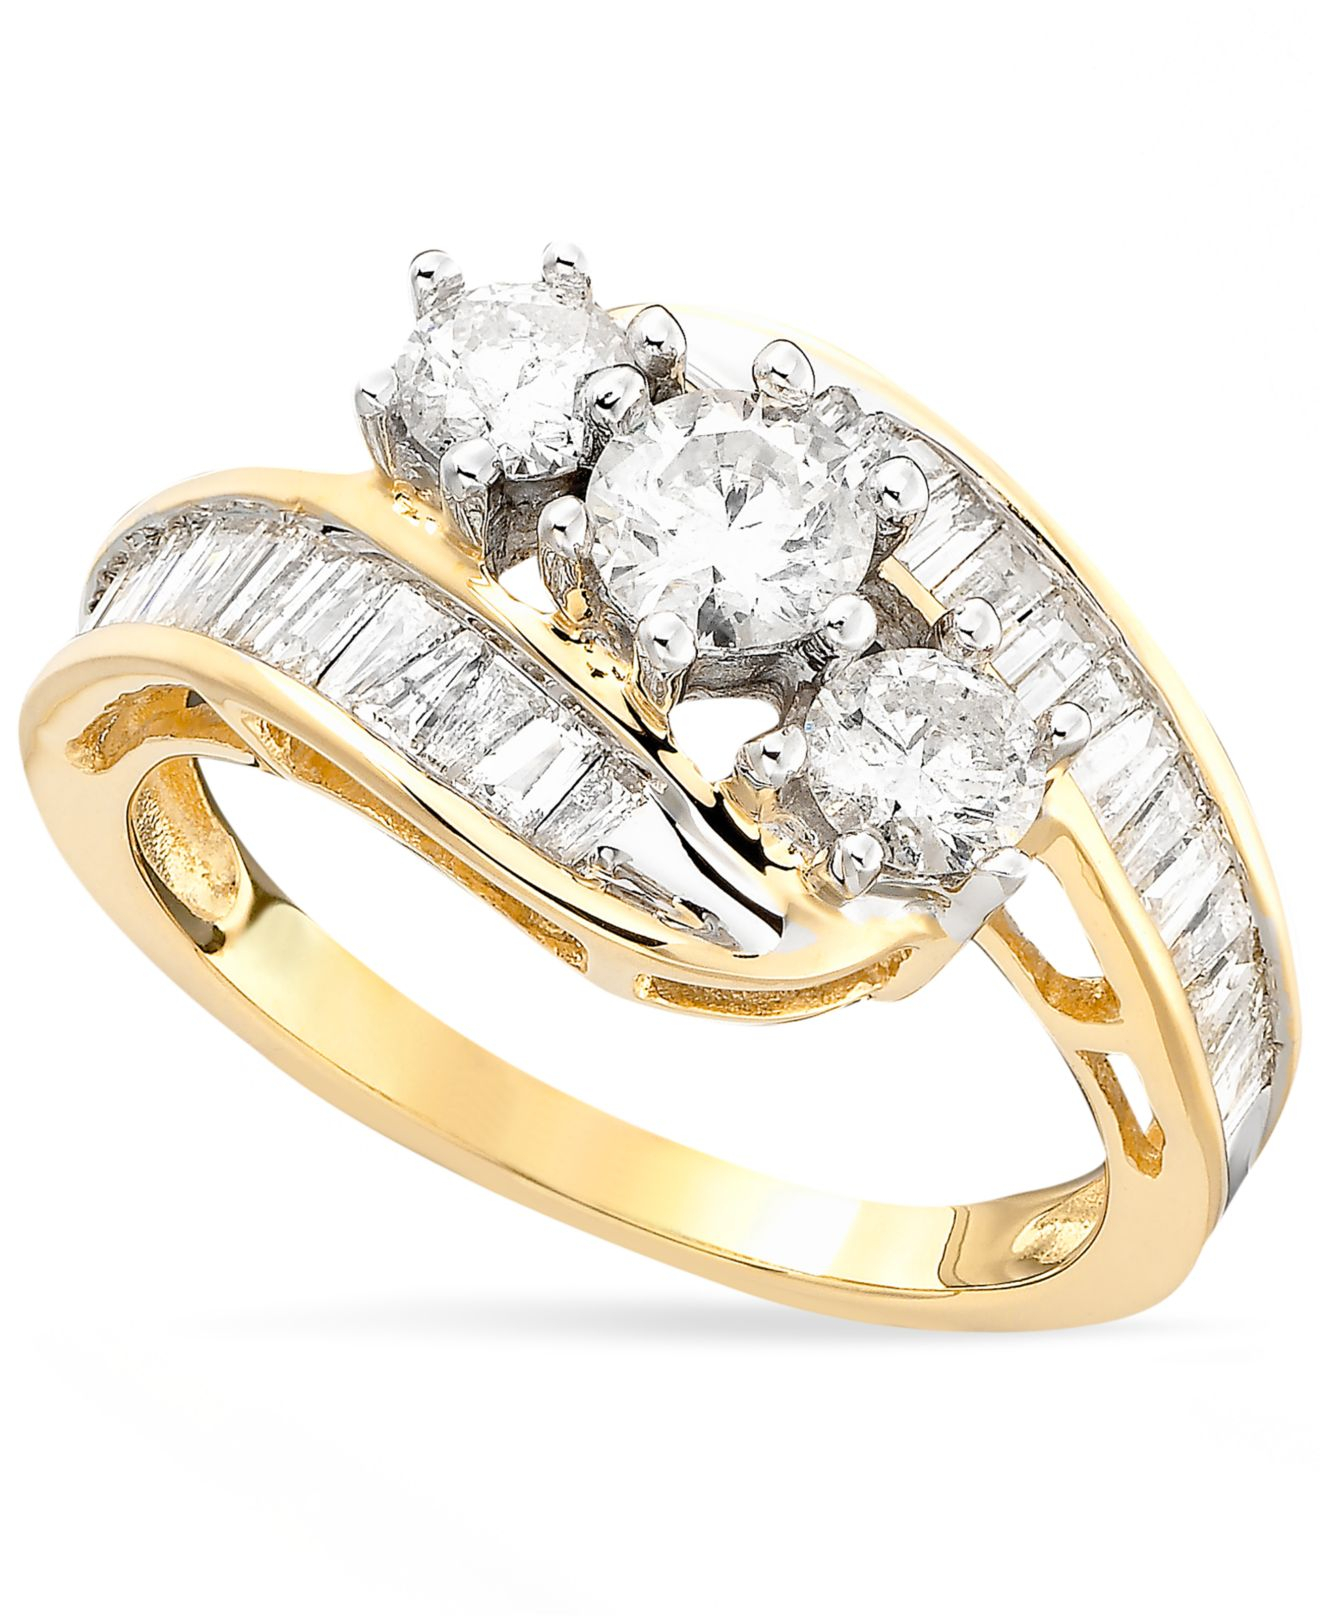 Macy s Us Diamond Bypass Ring In 14K Gold 1 1 2 Ct T W in Gold Yello